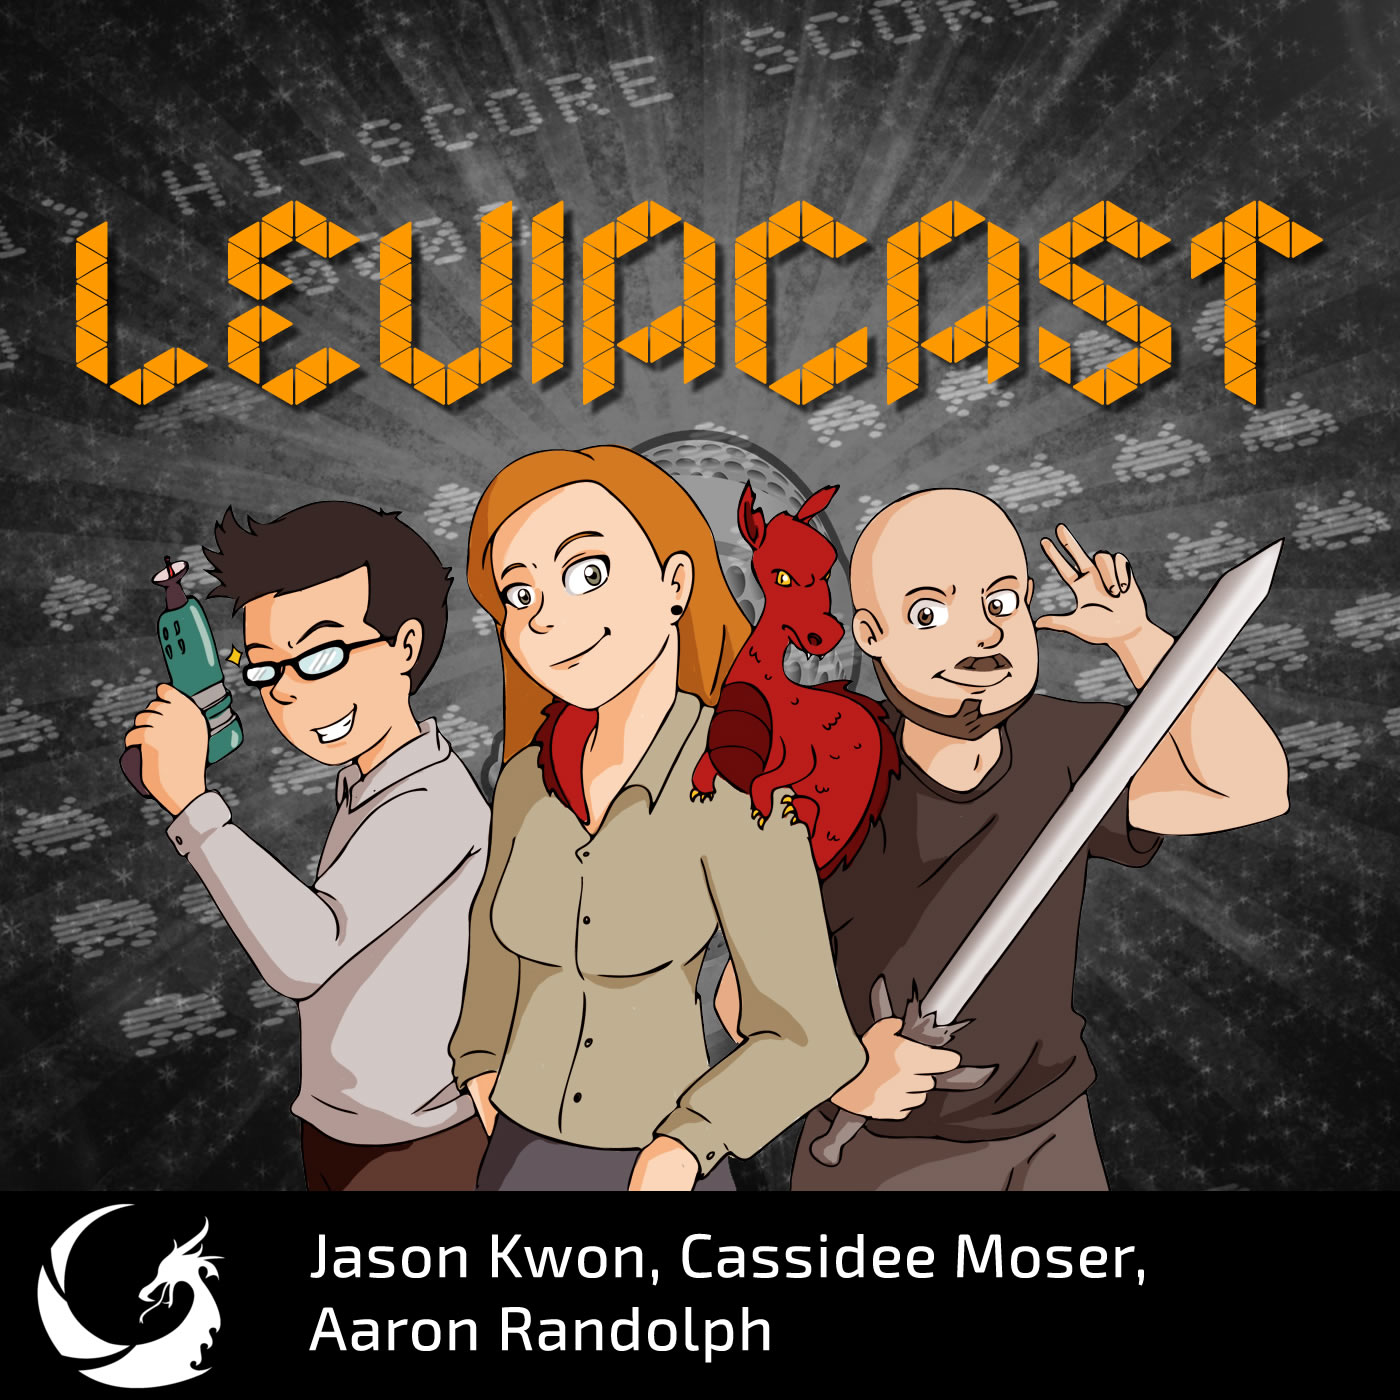 Leviacast Ep. 71: MGDS, EVO 2014, and The 3 Most Disturbing Games (Feat. Andrew Matt)